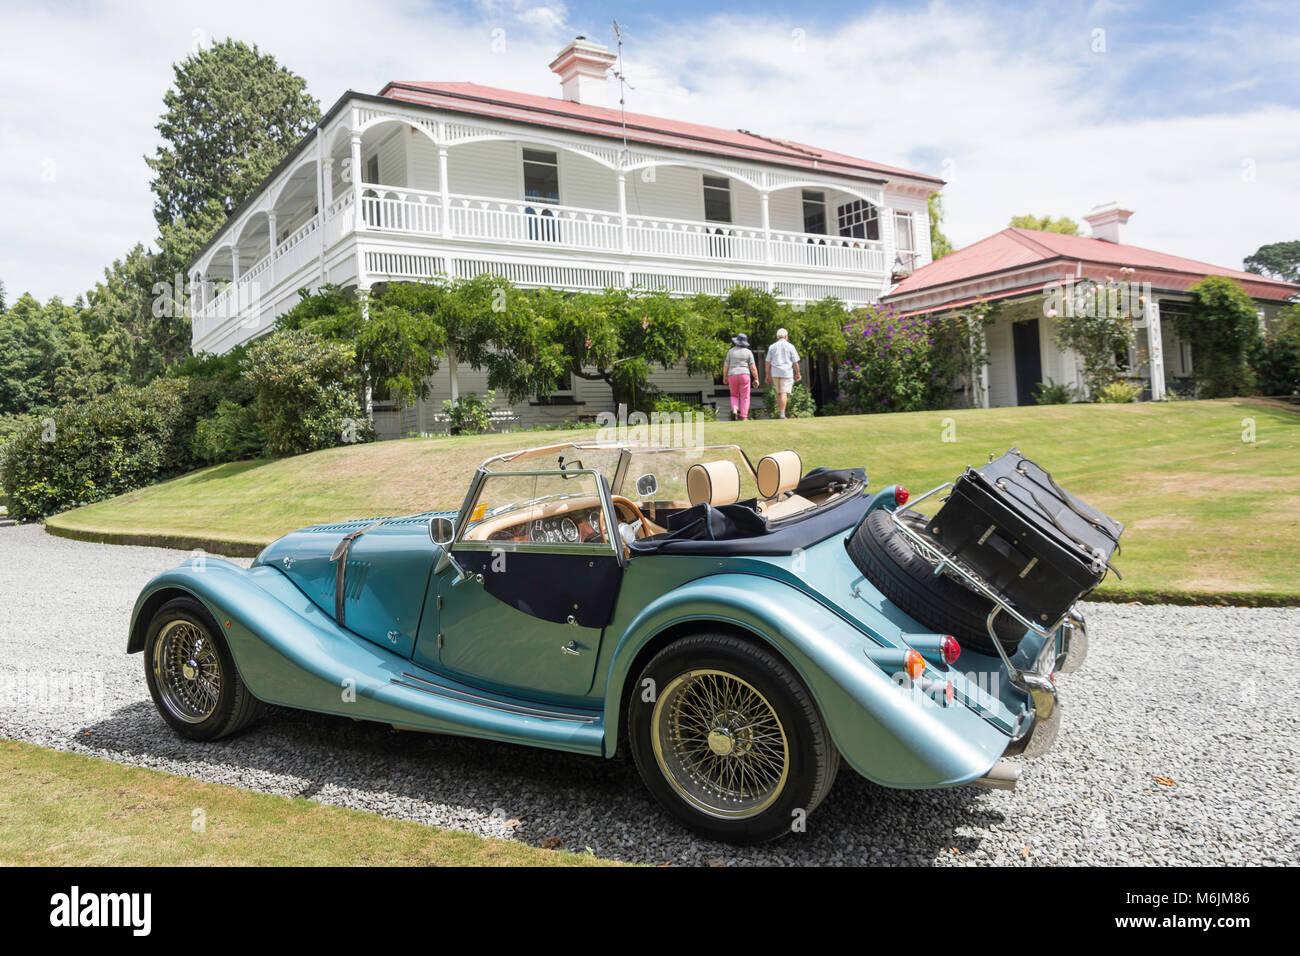 2010 Morgan Roadster convertible car, Homesdale House, Rakaia, Canterbury, New Zealand - Stock Image